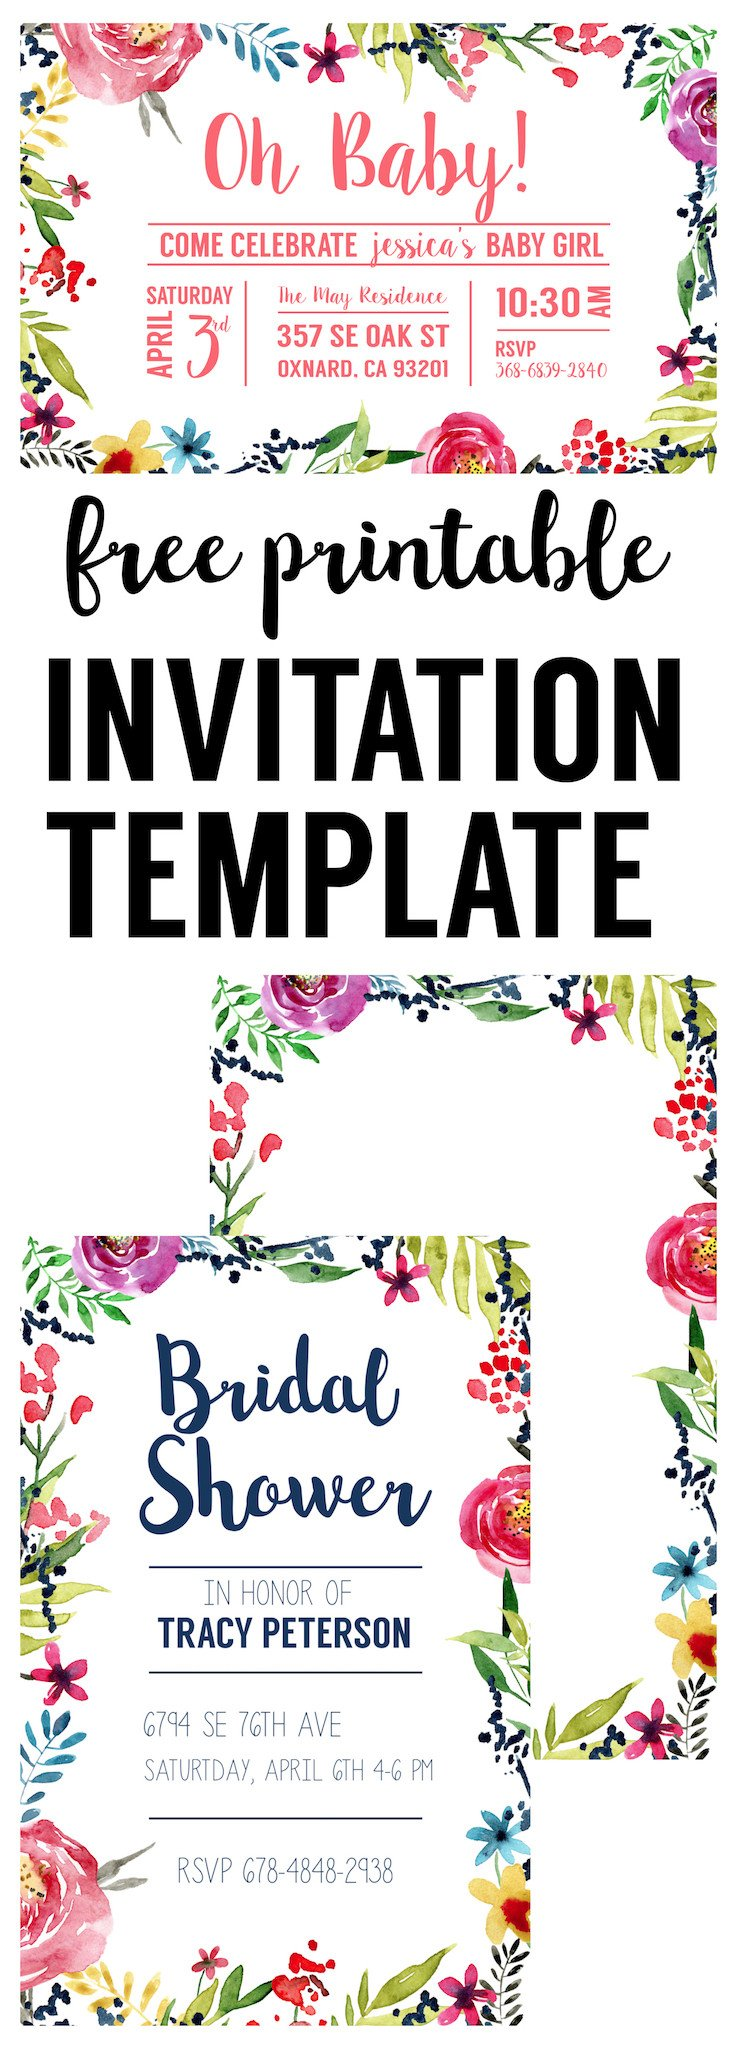 Free Printable Invitation Templates Floral Borders Invitations Free Printable Invitation